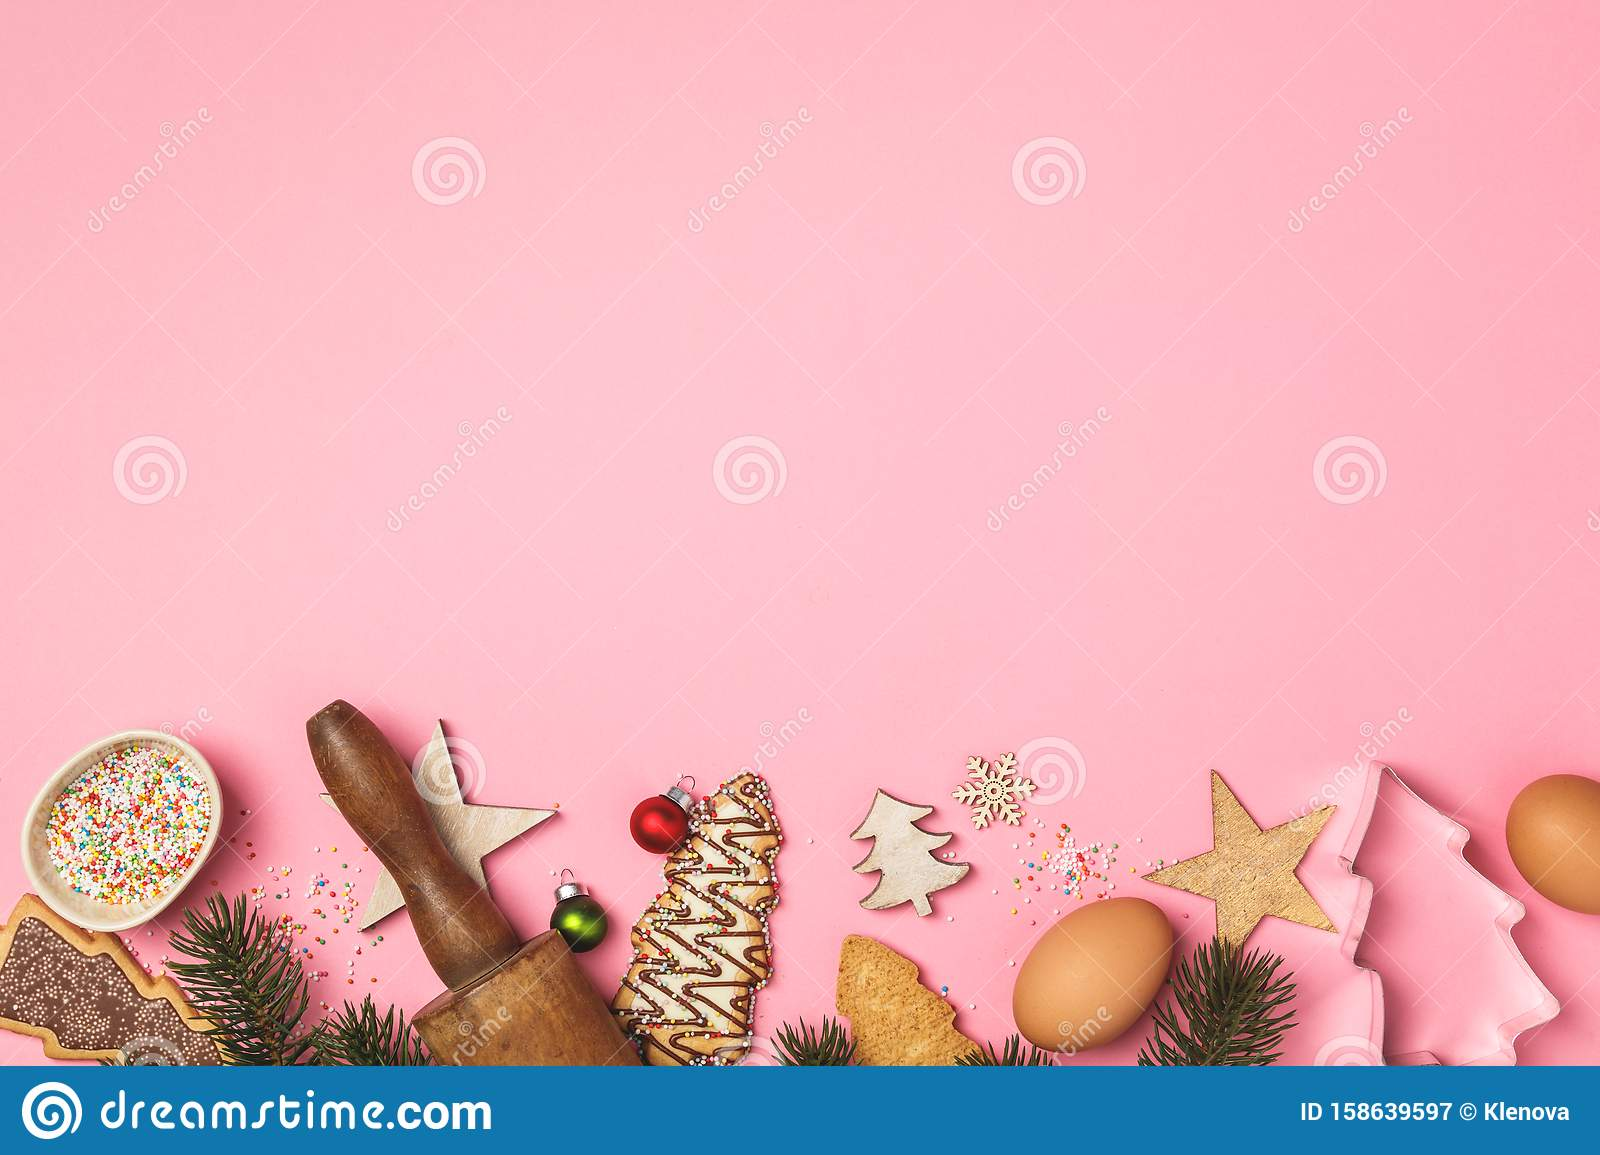 Christmas Gingerbread Cookies In The Shape Of A Christmas Tree And Baking Ingredients Stock Image Image Of Text Celebration 158639597